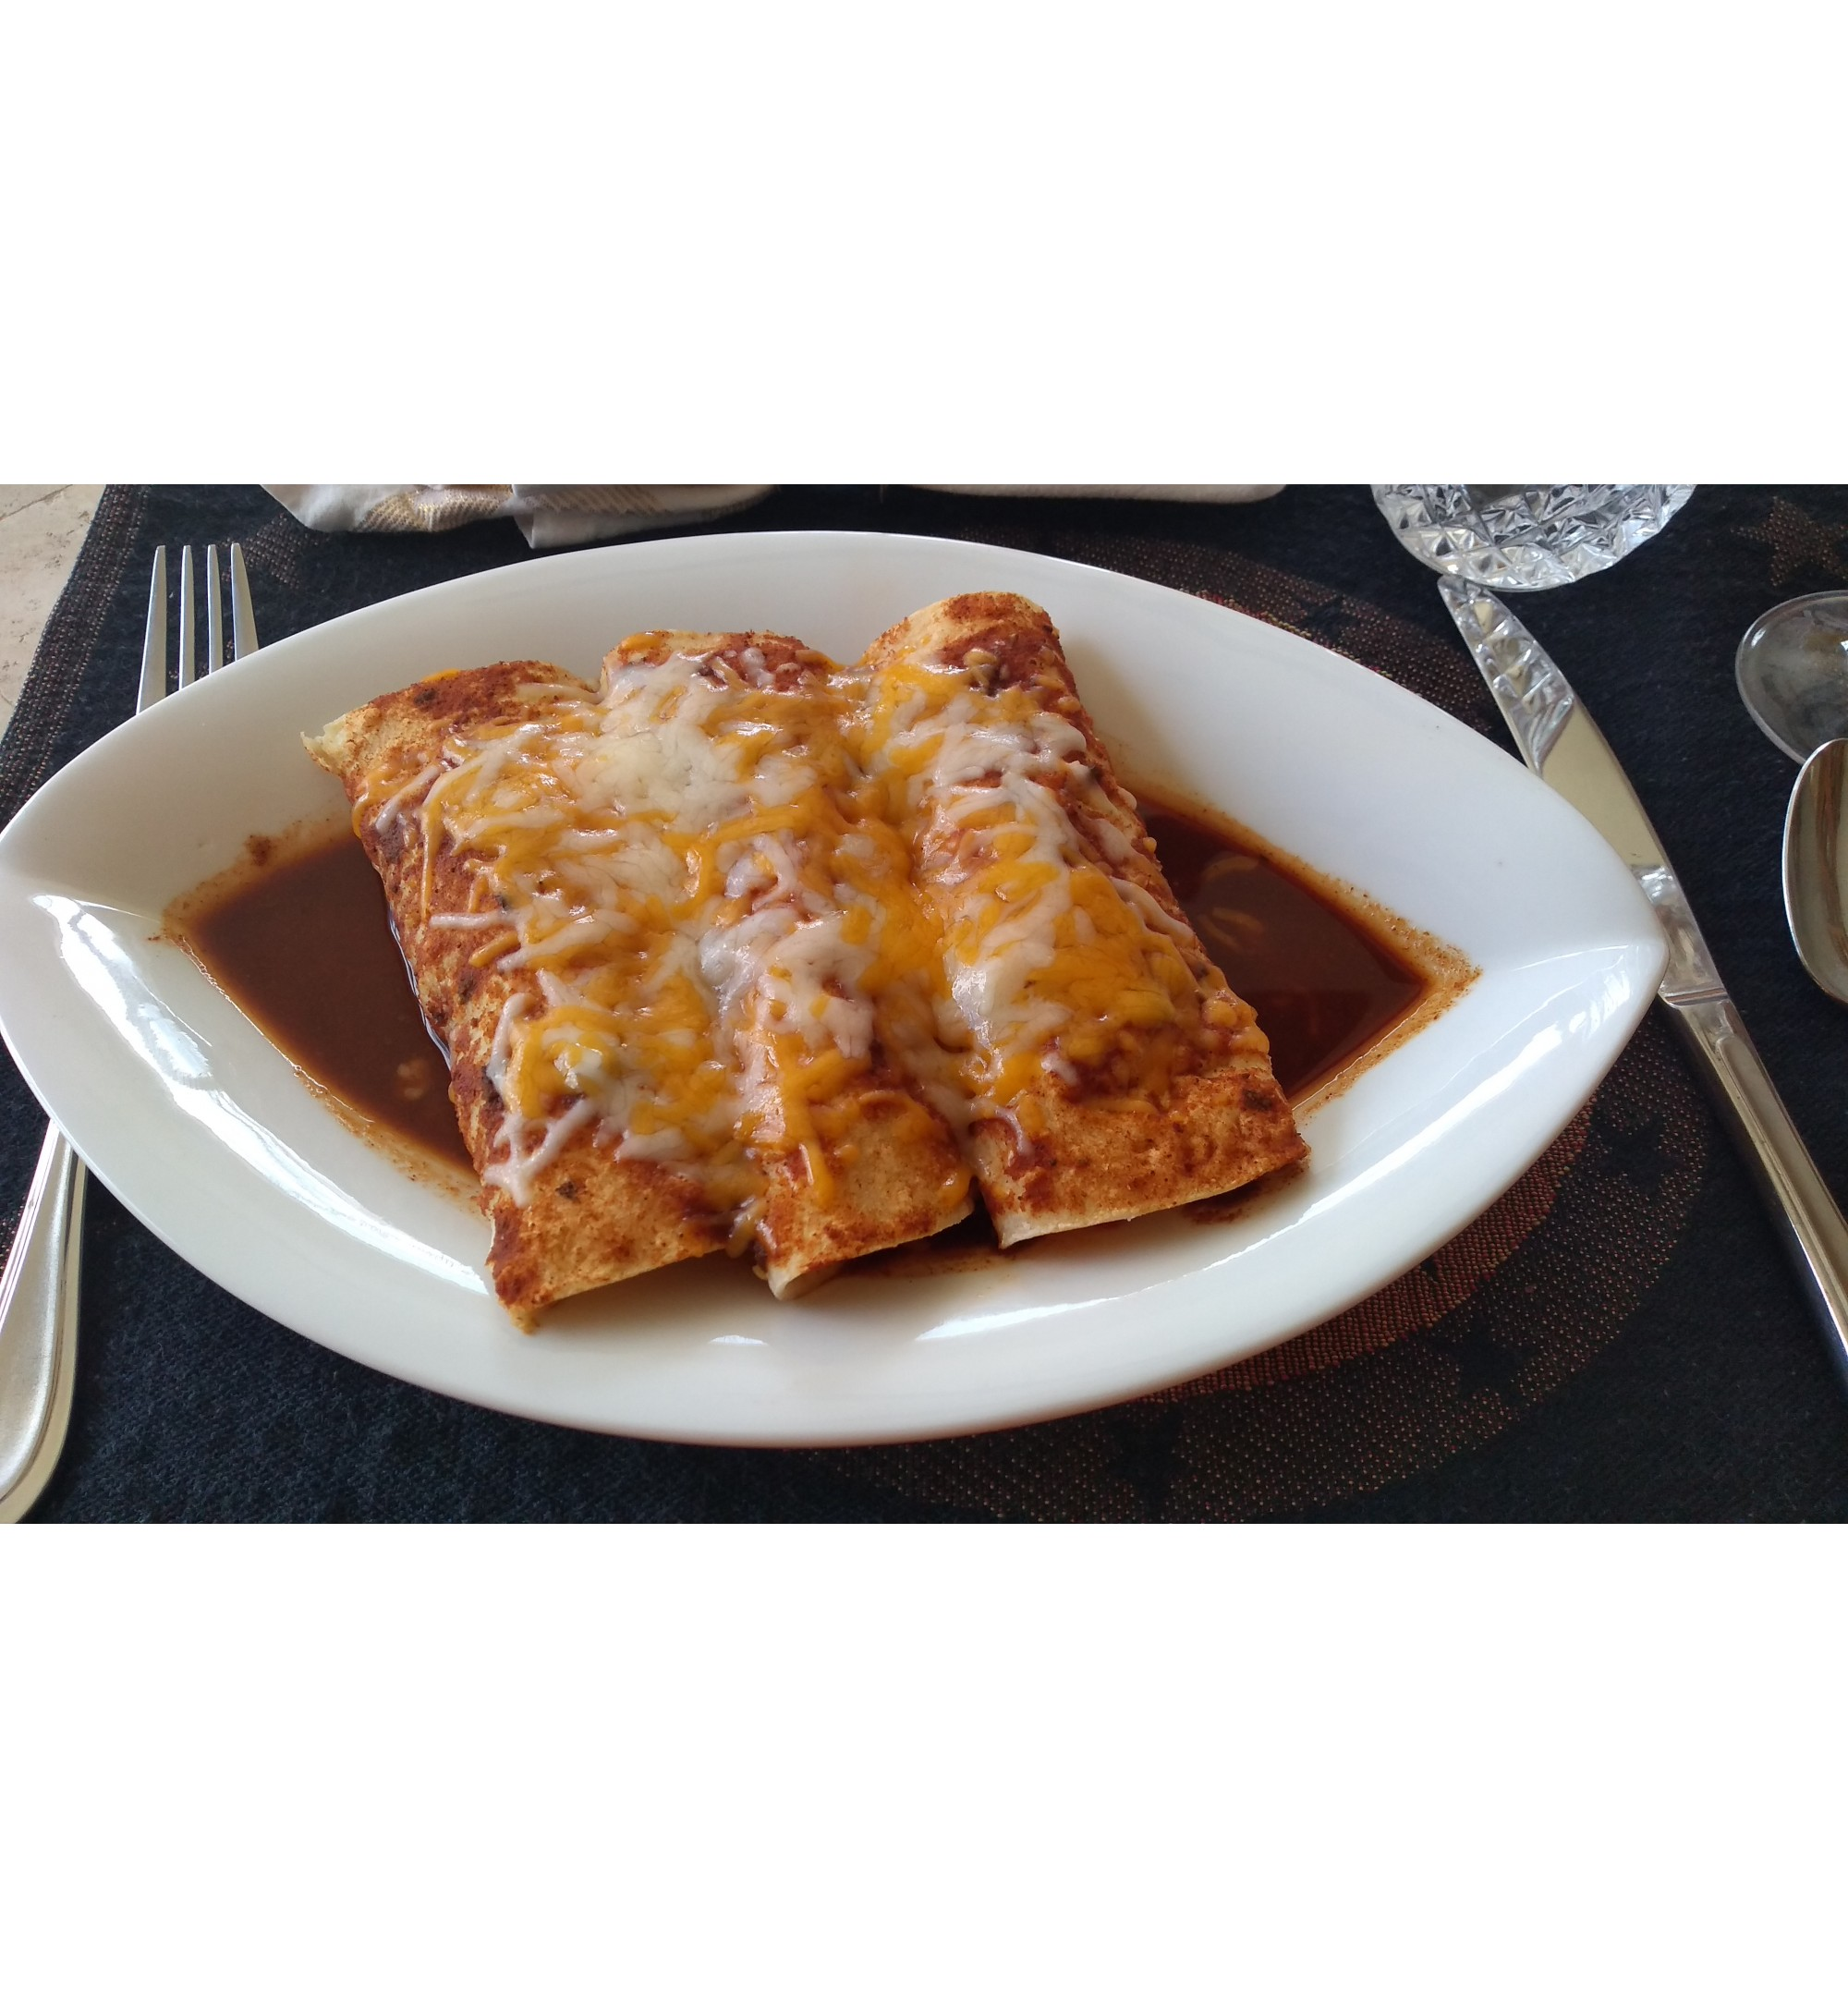 3 Cheese enchilada - Spicy